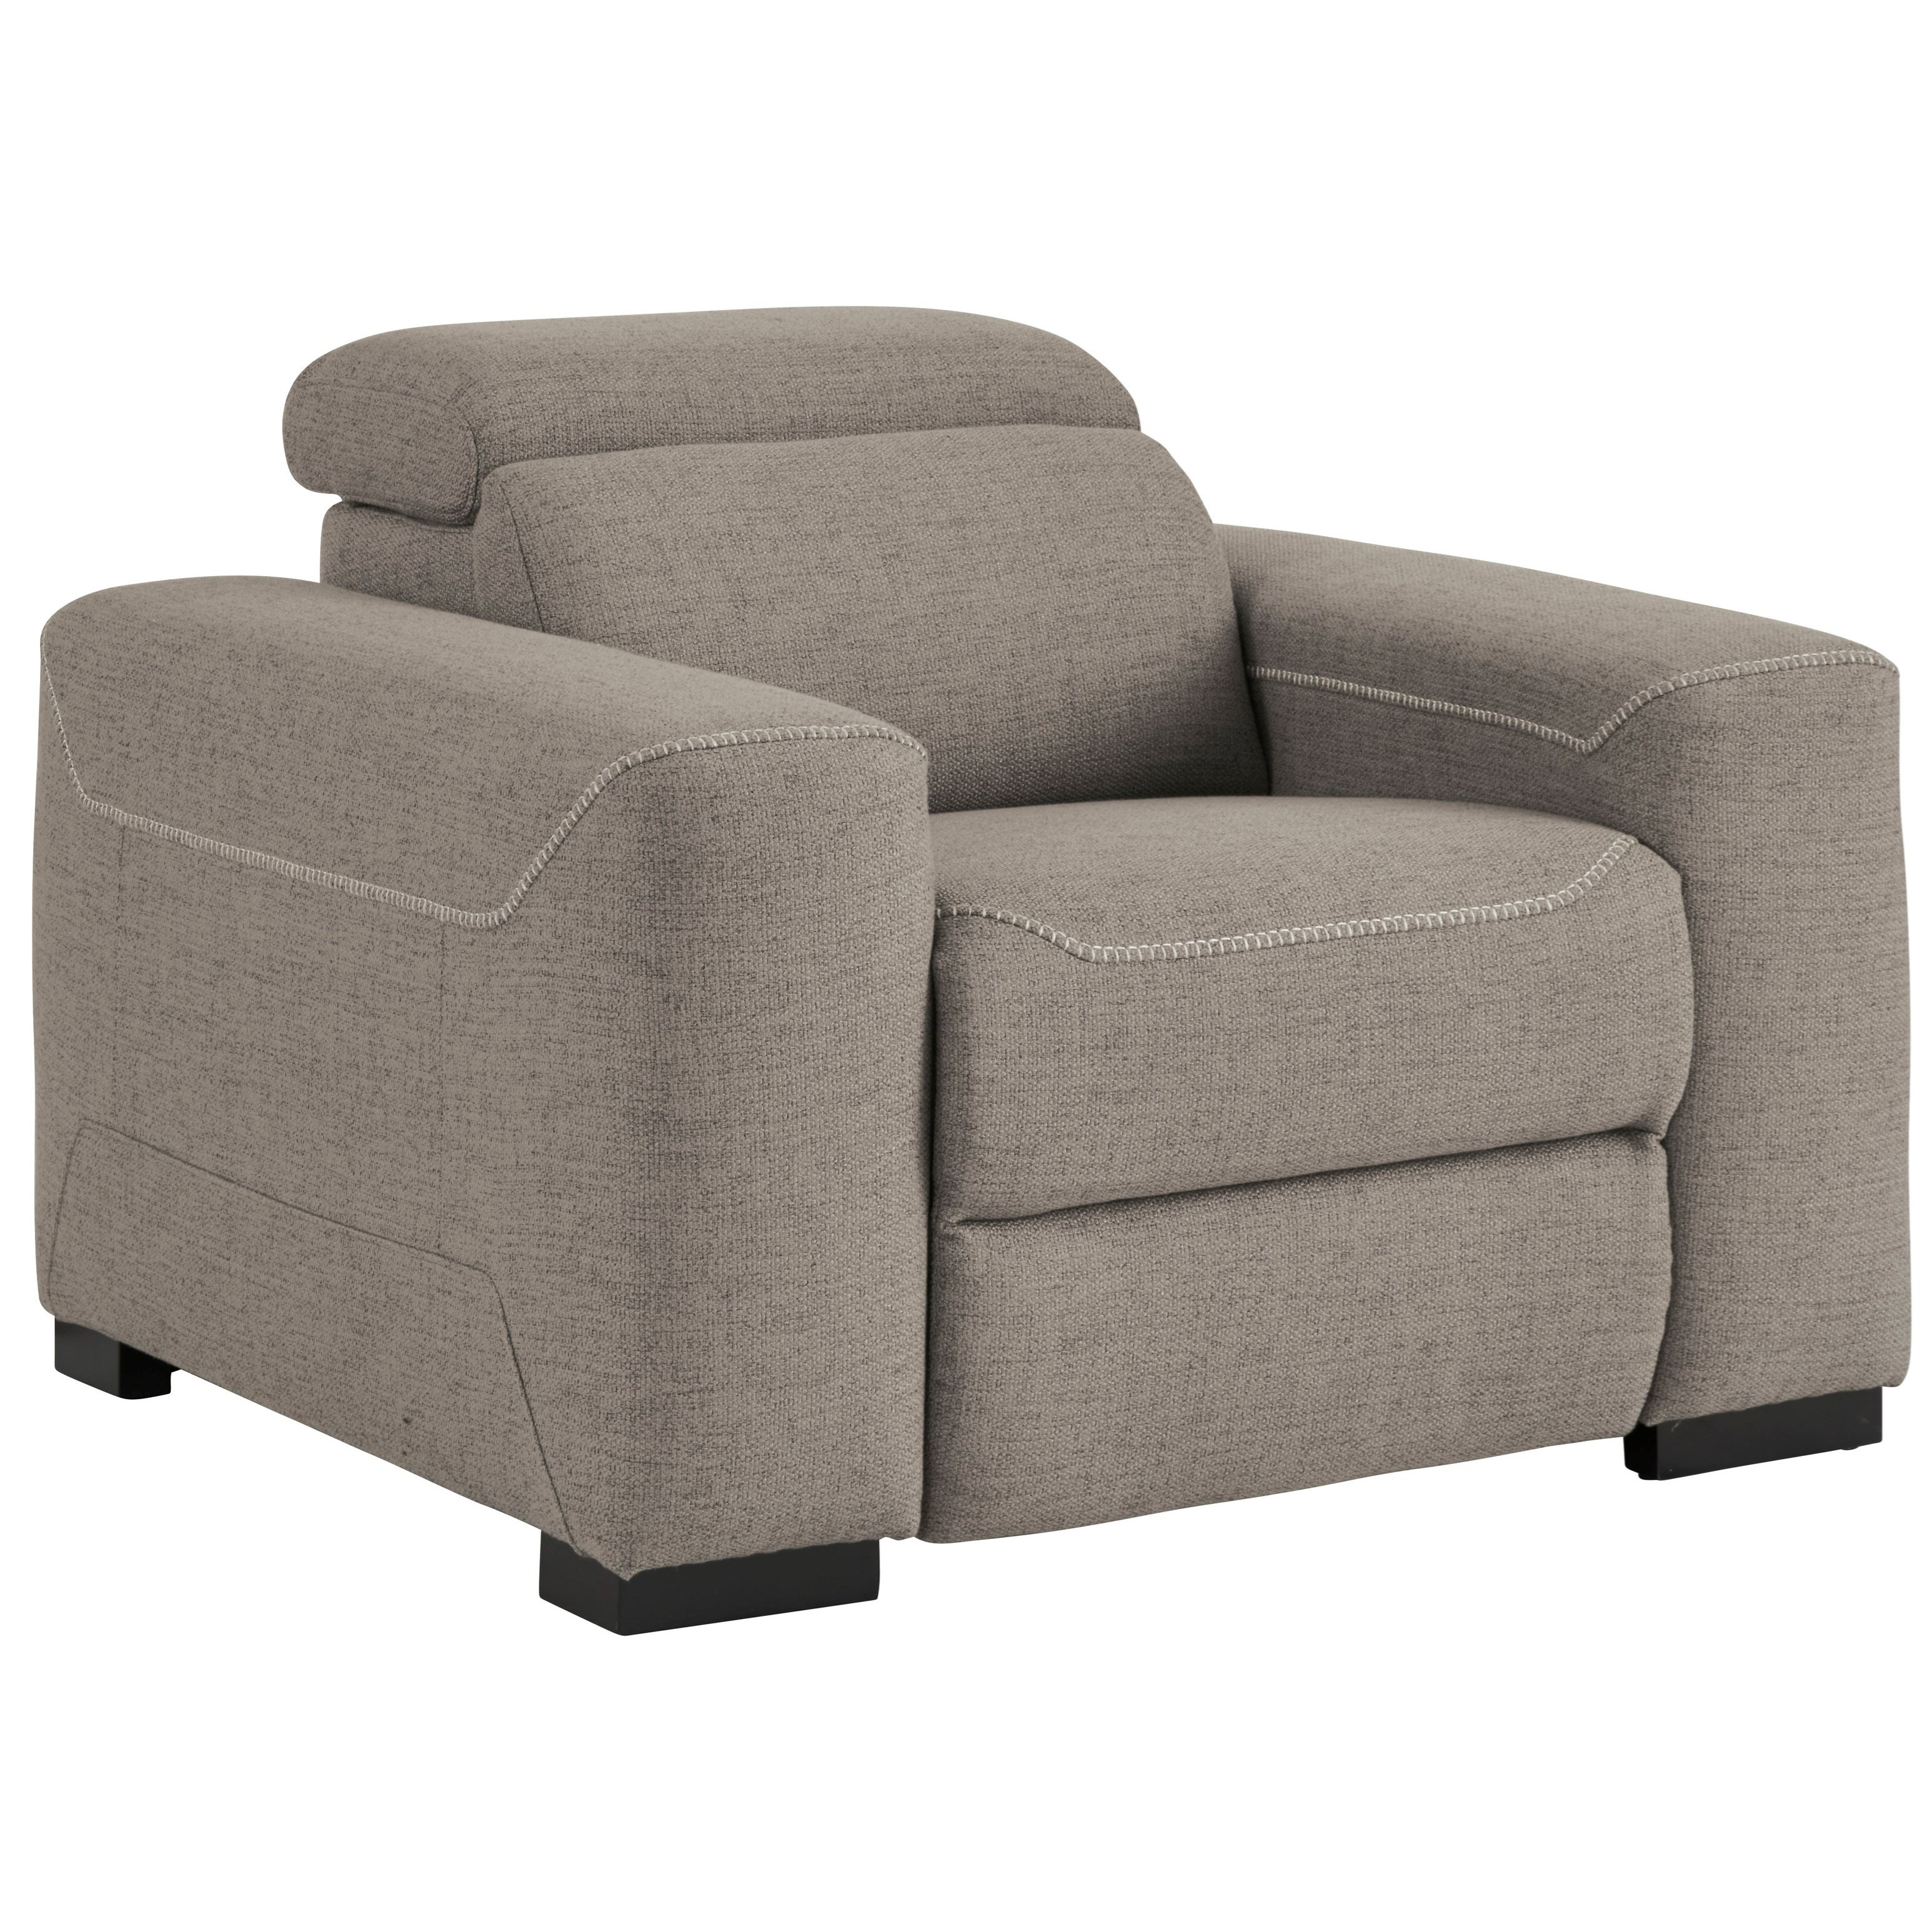 Mabton Power Recliner w/ Adj. Headrest by Signature Design by Ashley at Beck's Furniture